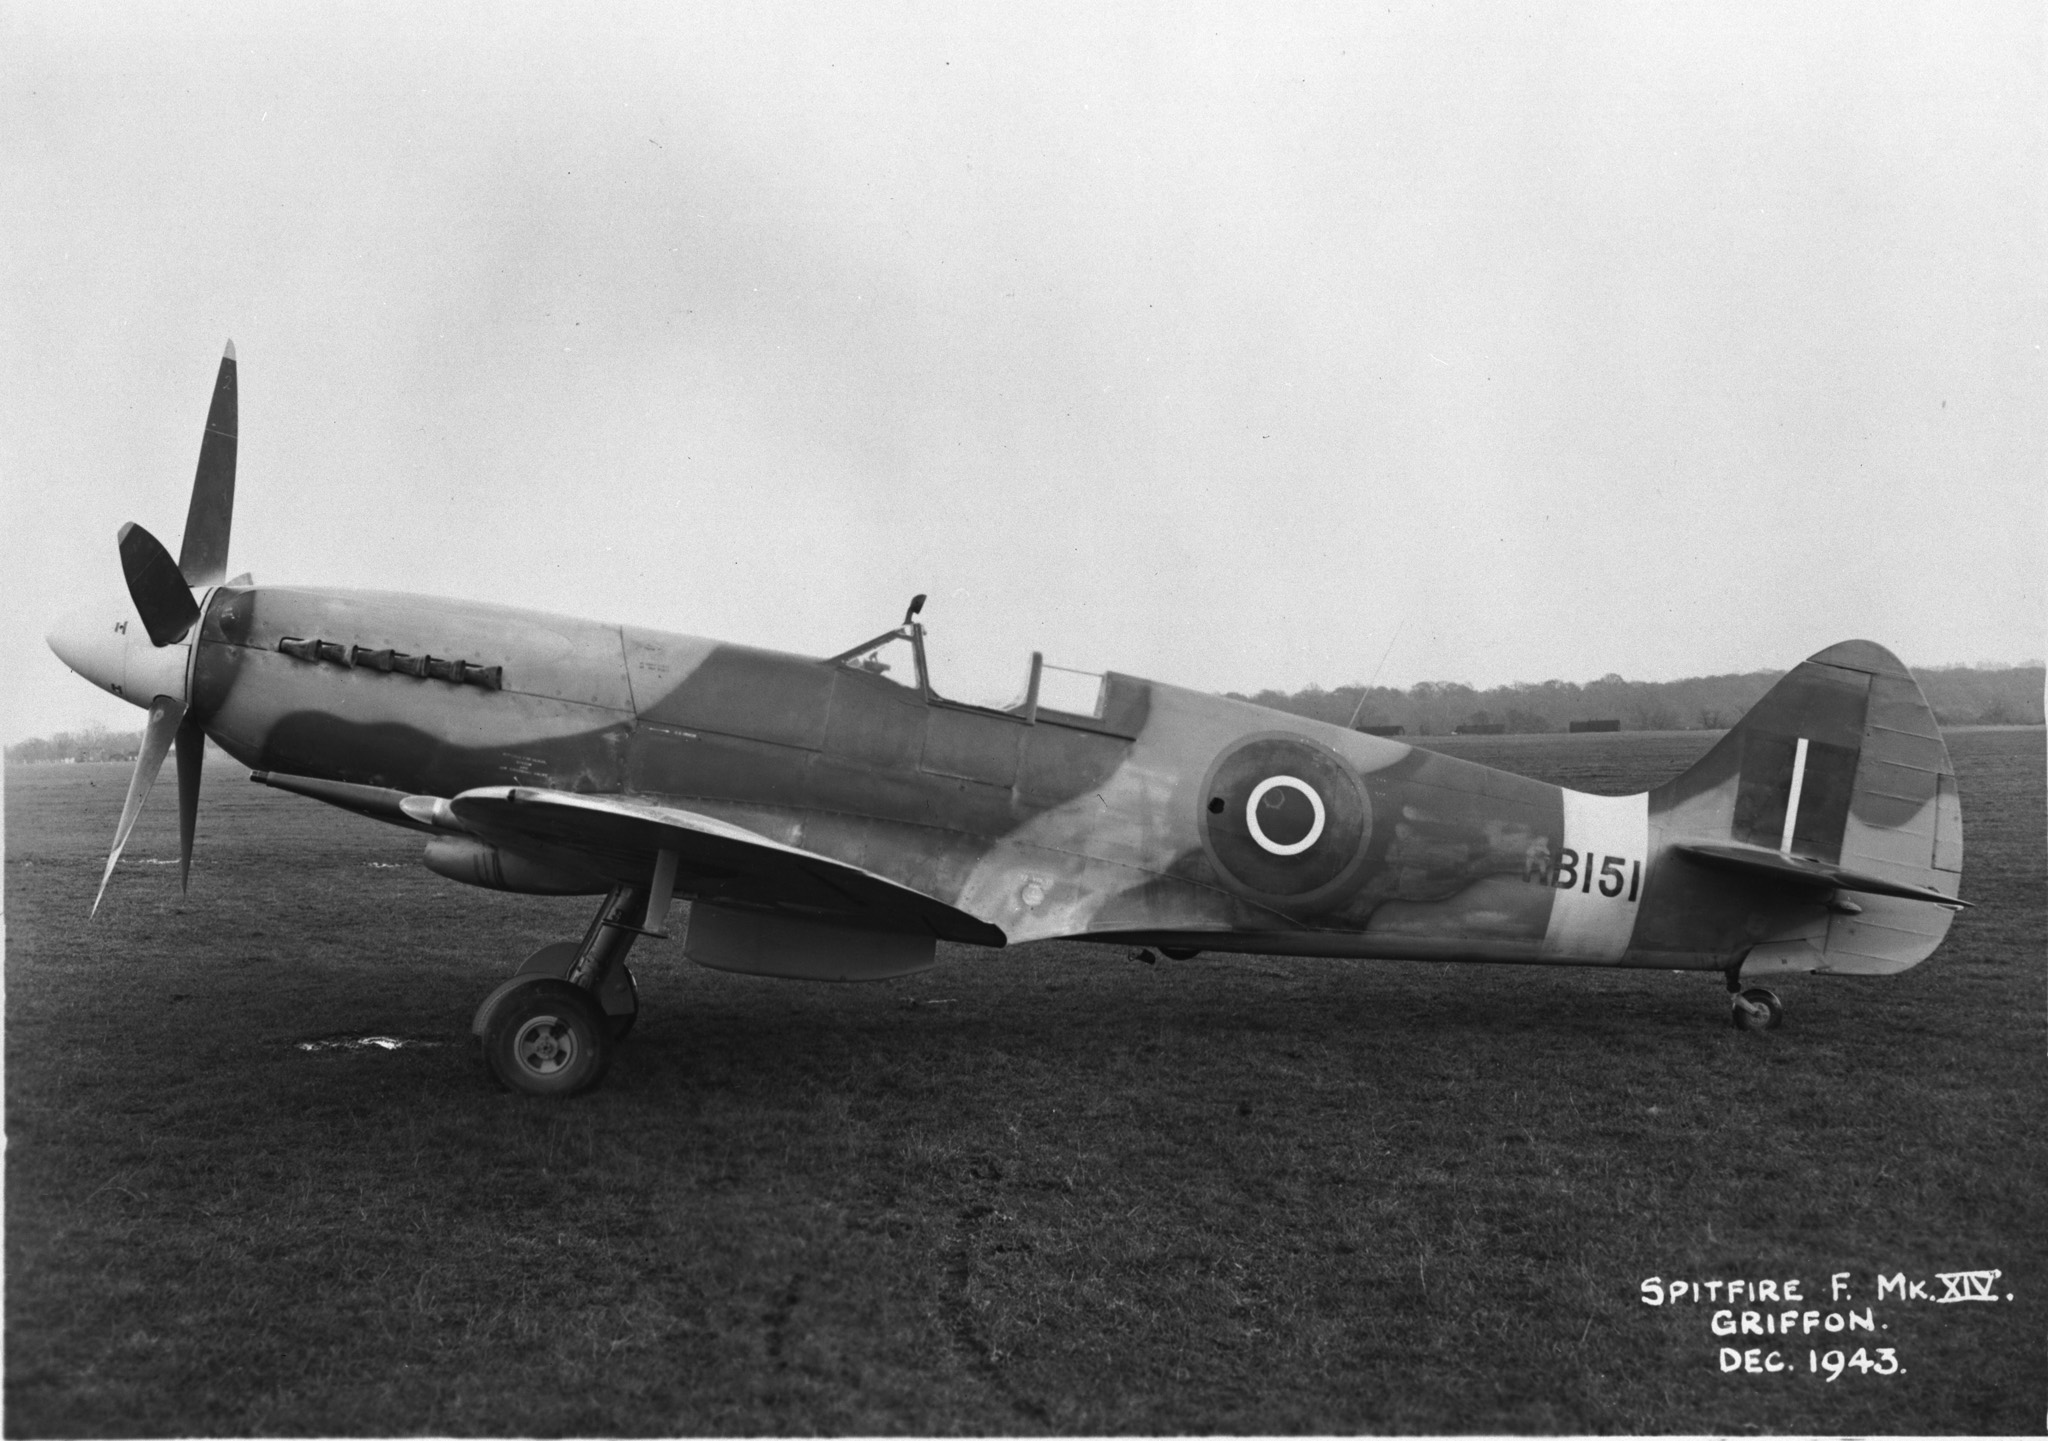 Une photo d'un Spitfire Mk XIV prise en décembre 1943. PHOTO : Archives du MDN, RE-20633-7